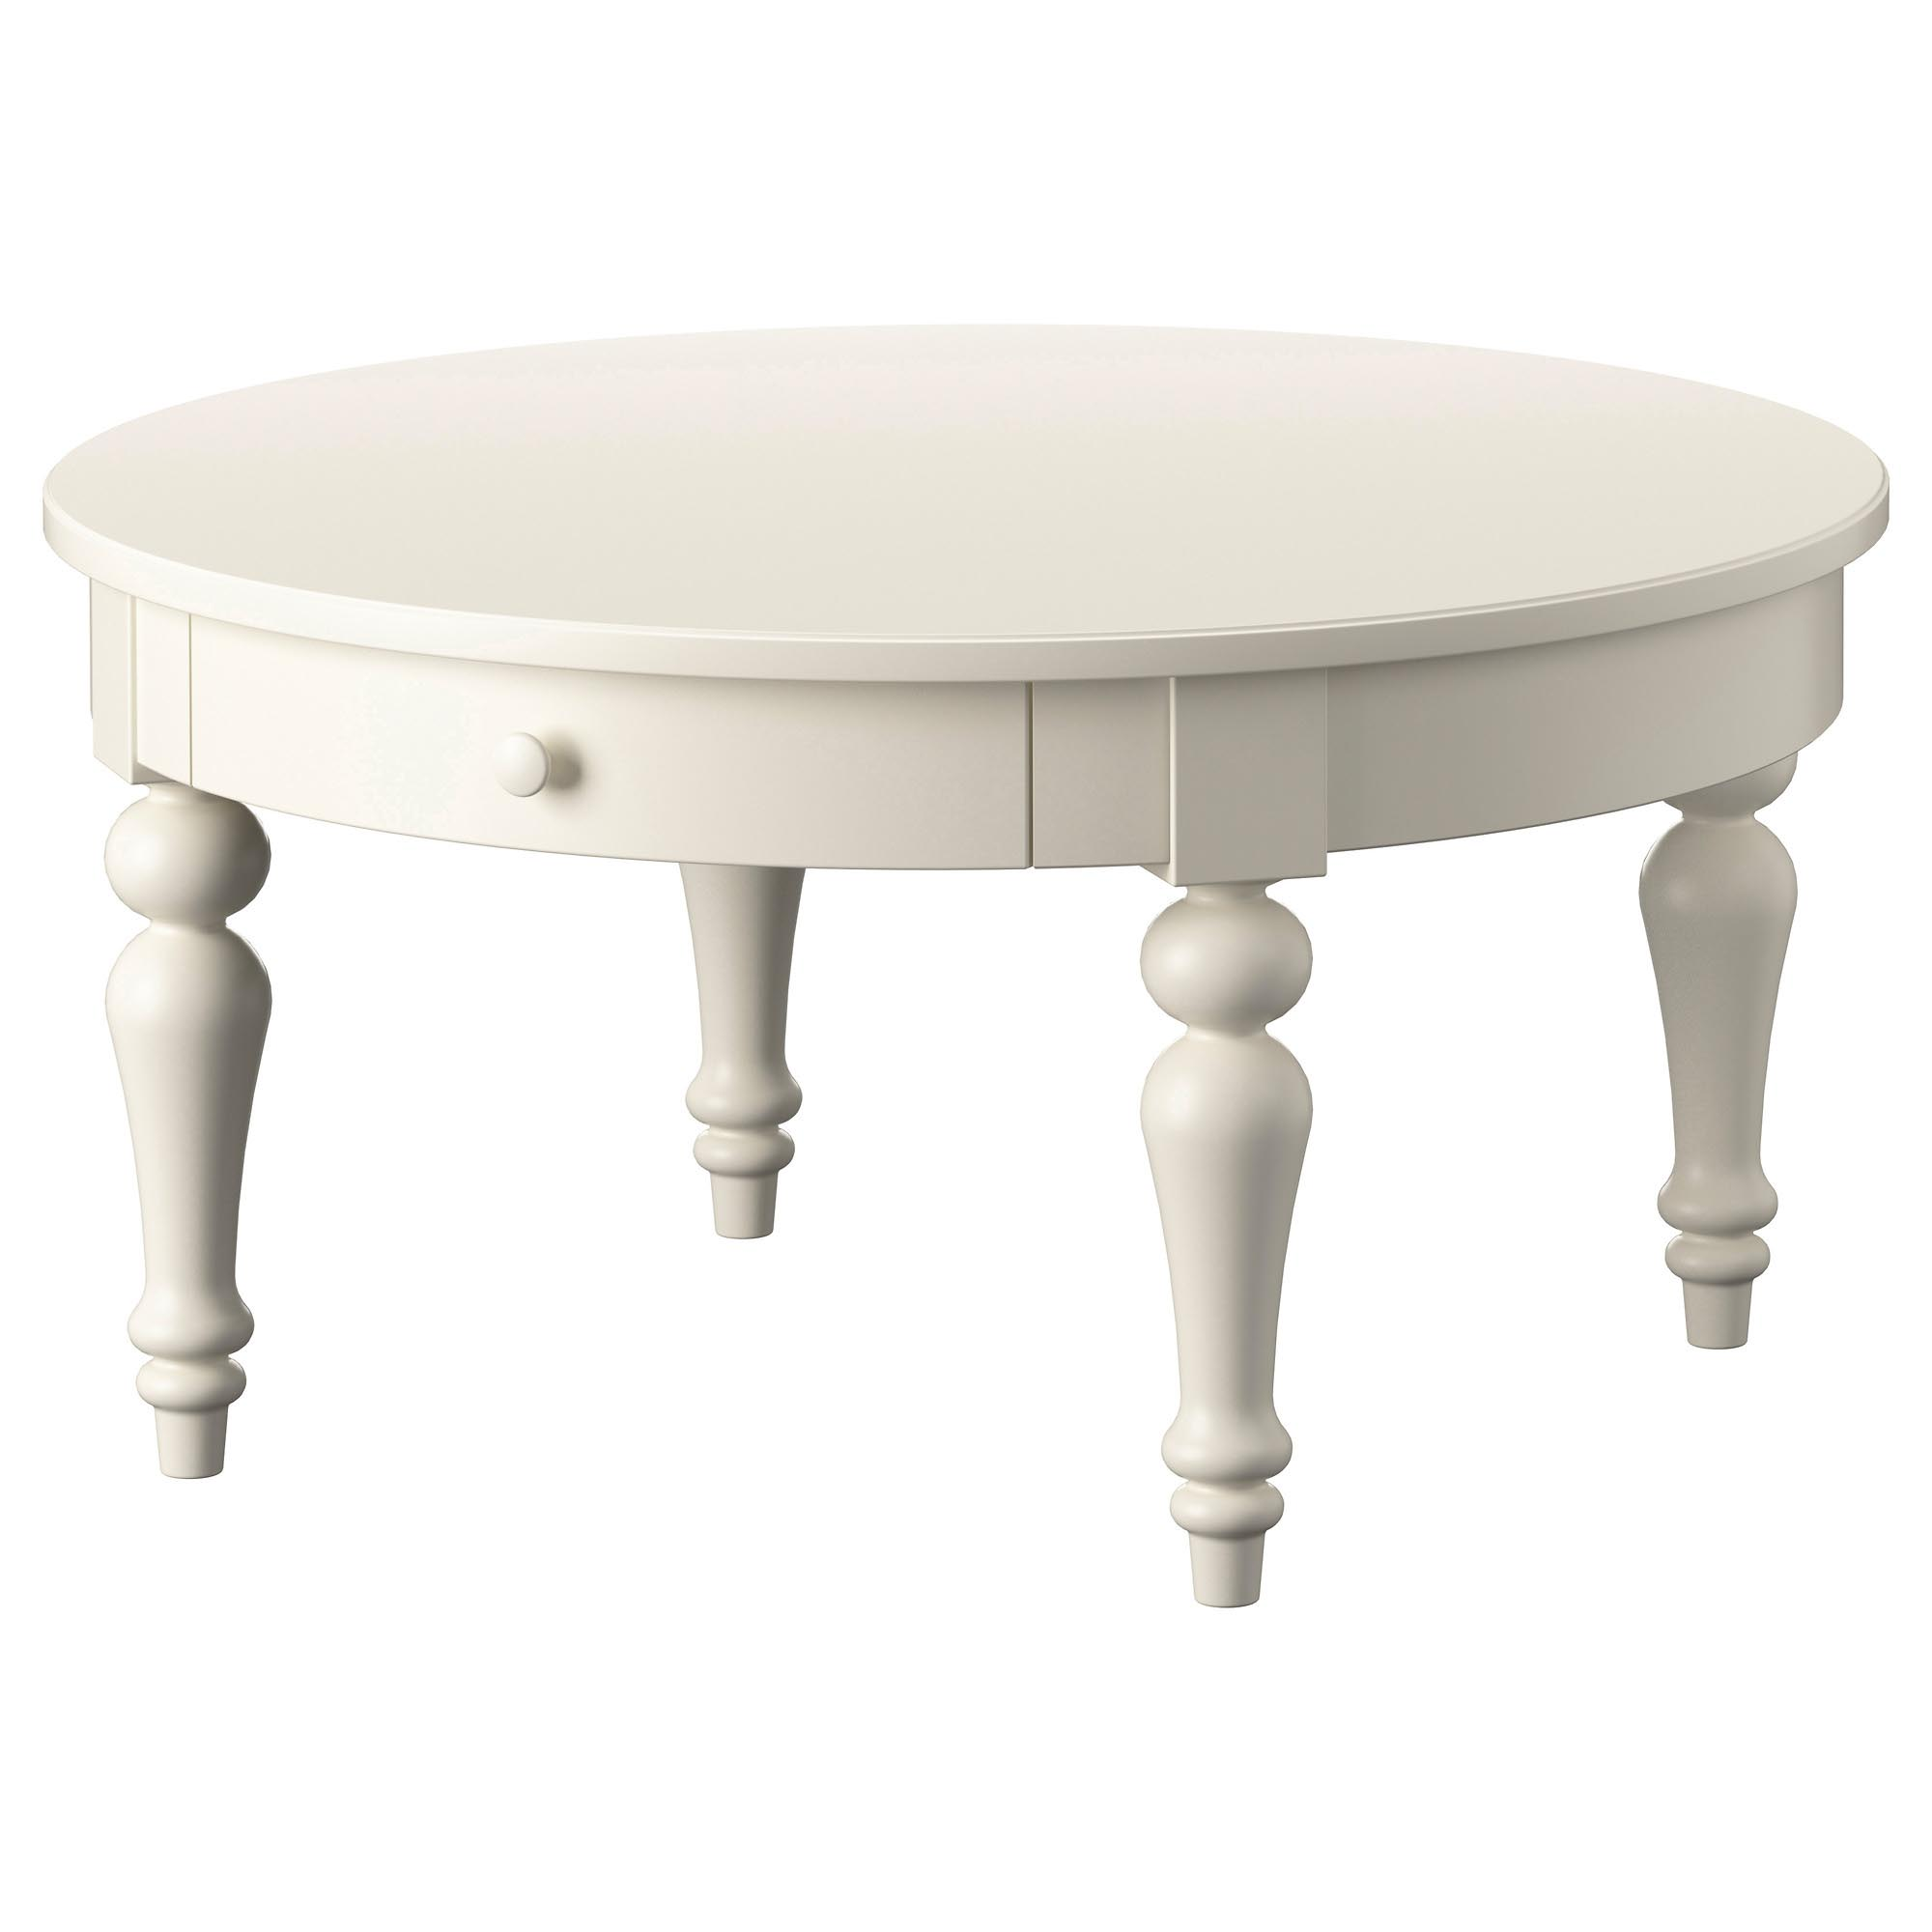 round white coffee table  coffee table design ideas - round white coffee table